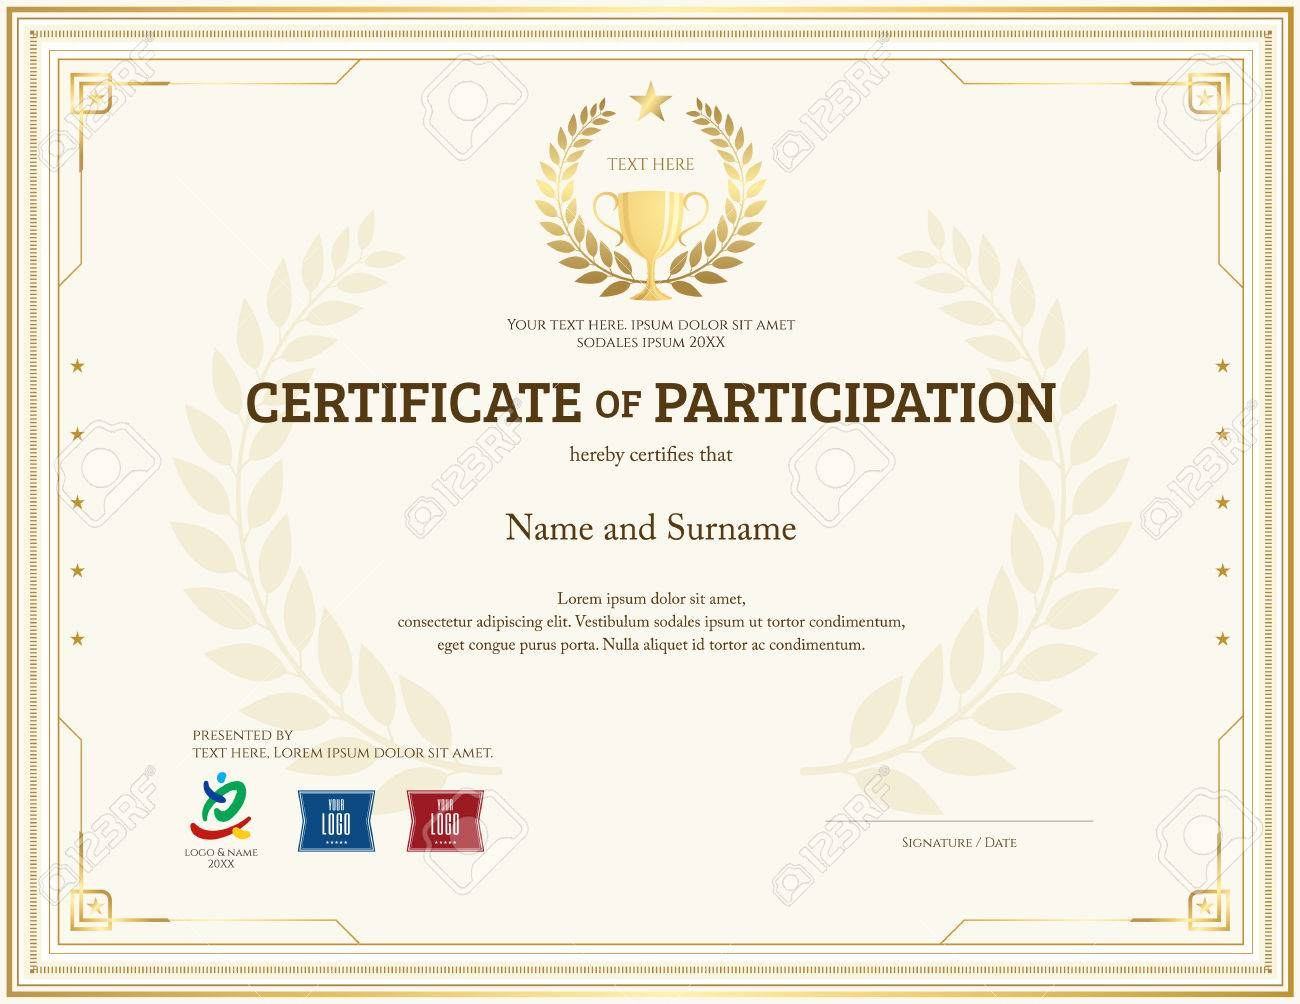 Certificate of participation template in gold theme with trophy certificate of participation template in gold theme with trophy and laurel watermark stock vector 69583453 yelopaper Choice Image